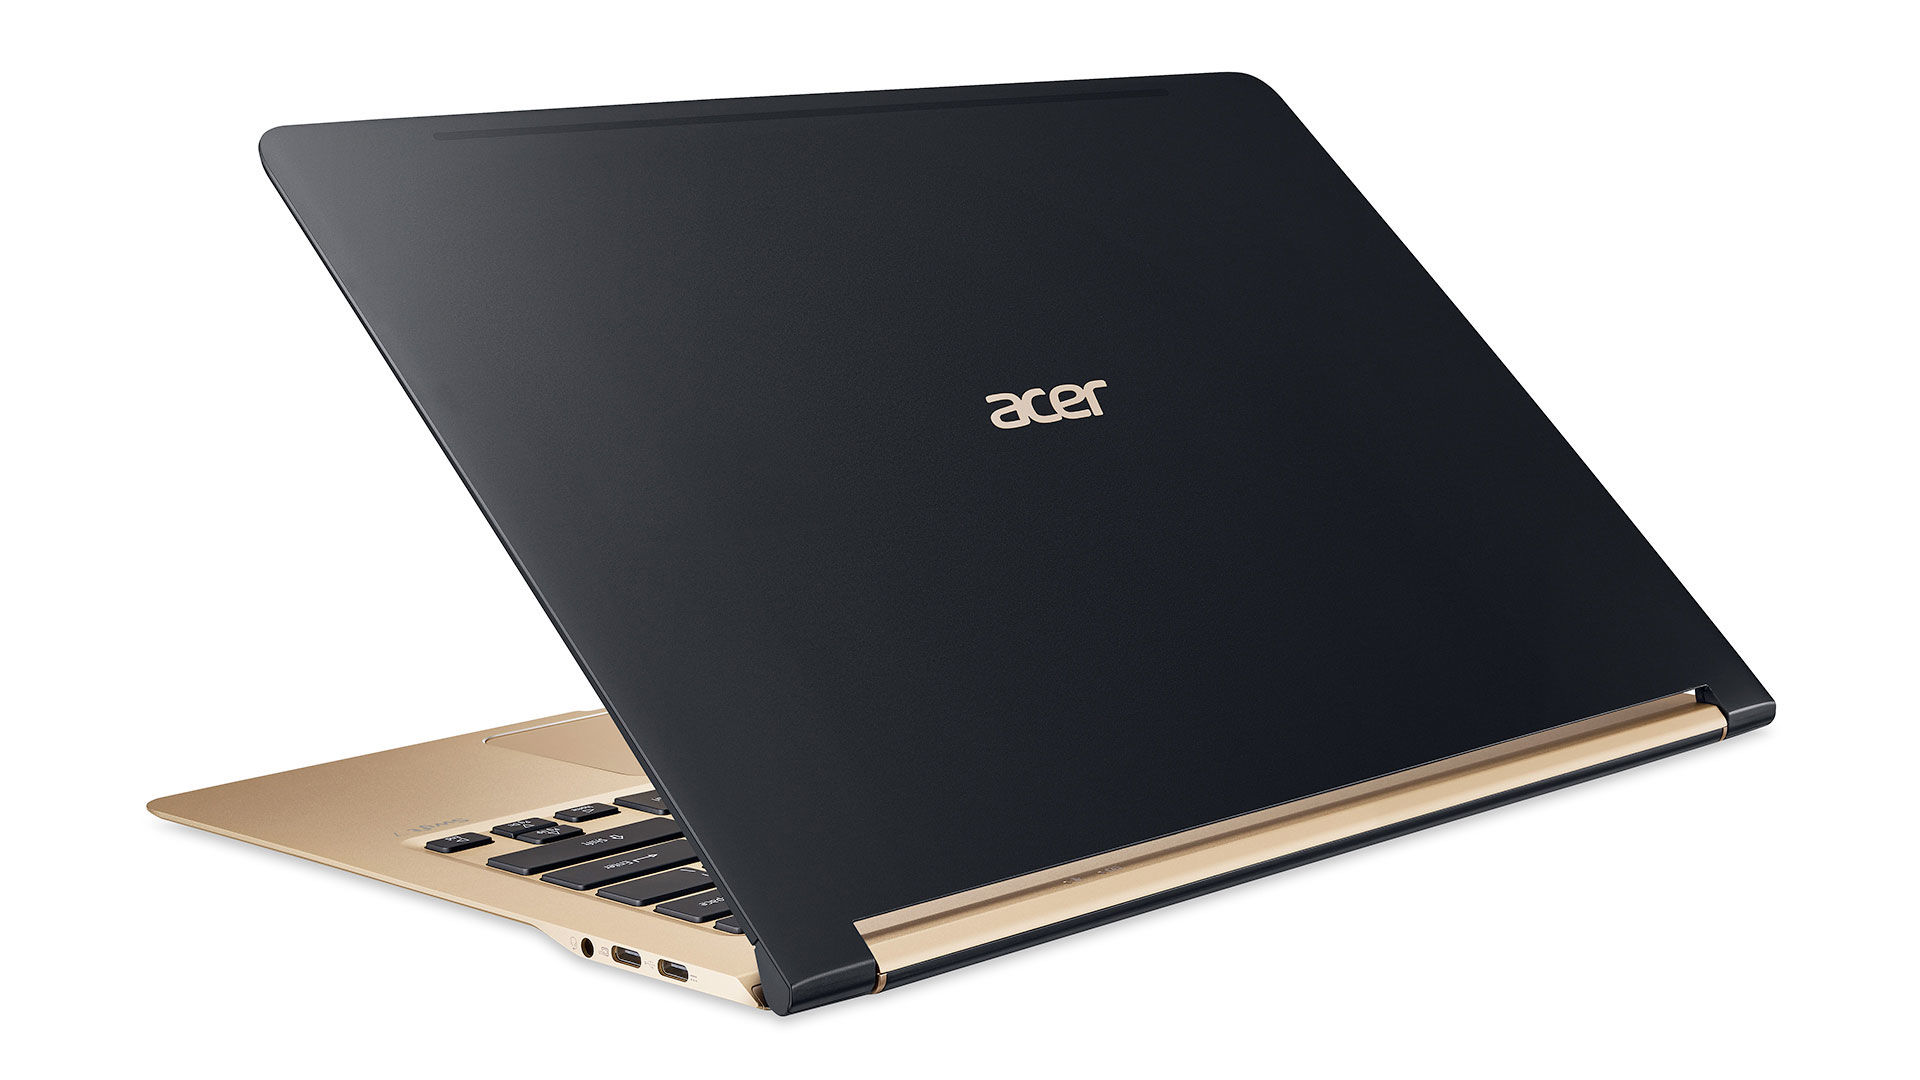 acer swift 7 review back EXCLUSIVE: Acer On A Roll As Reviewers Praise Their New Products